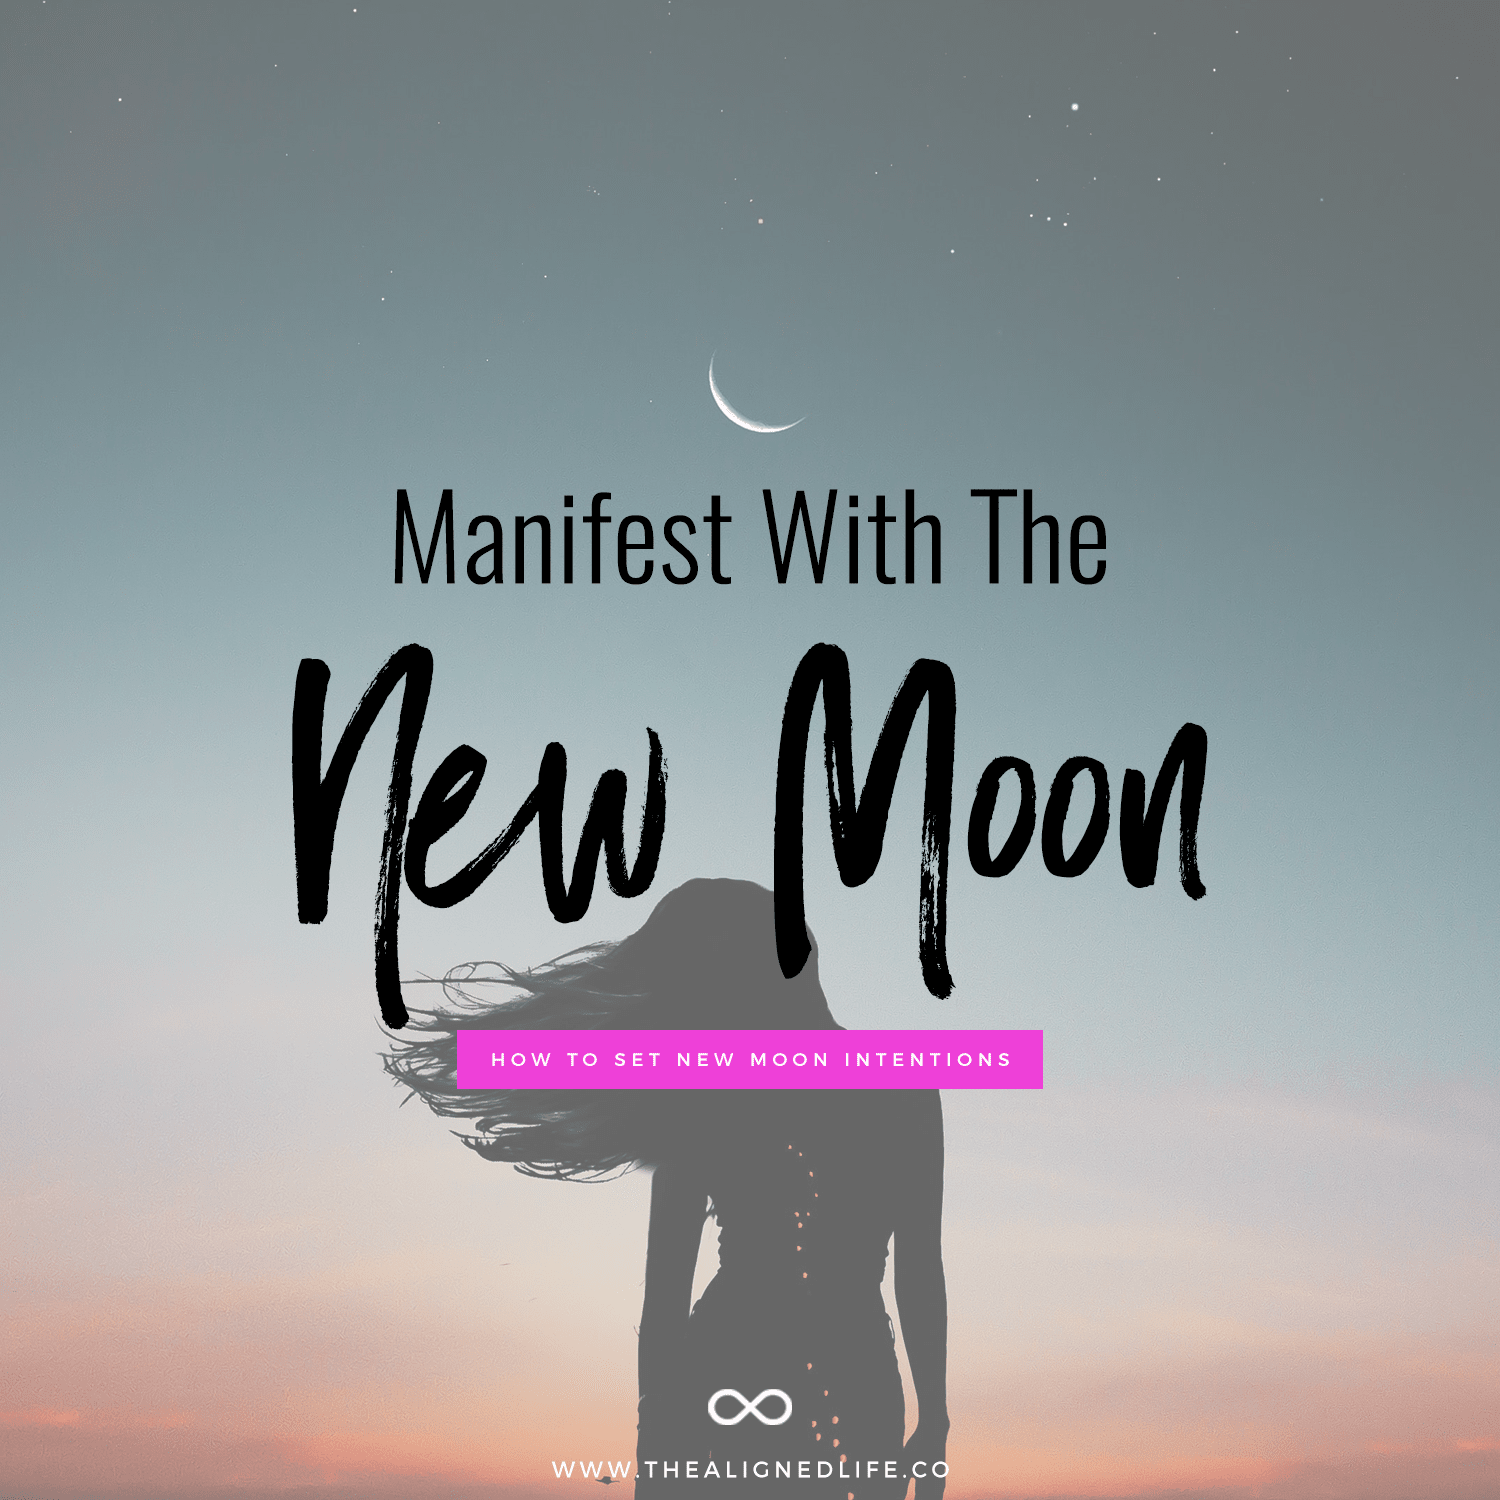 How To Manifest With The New Moon